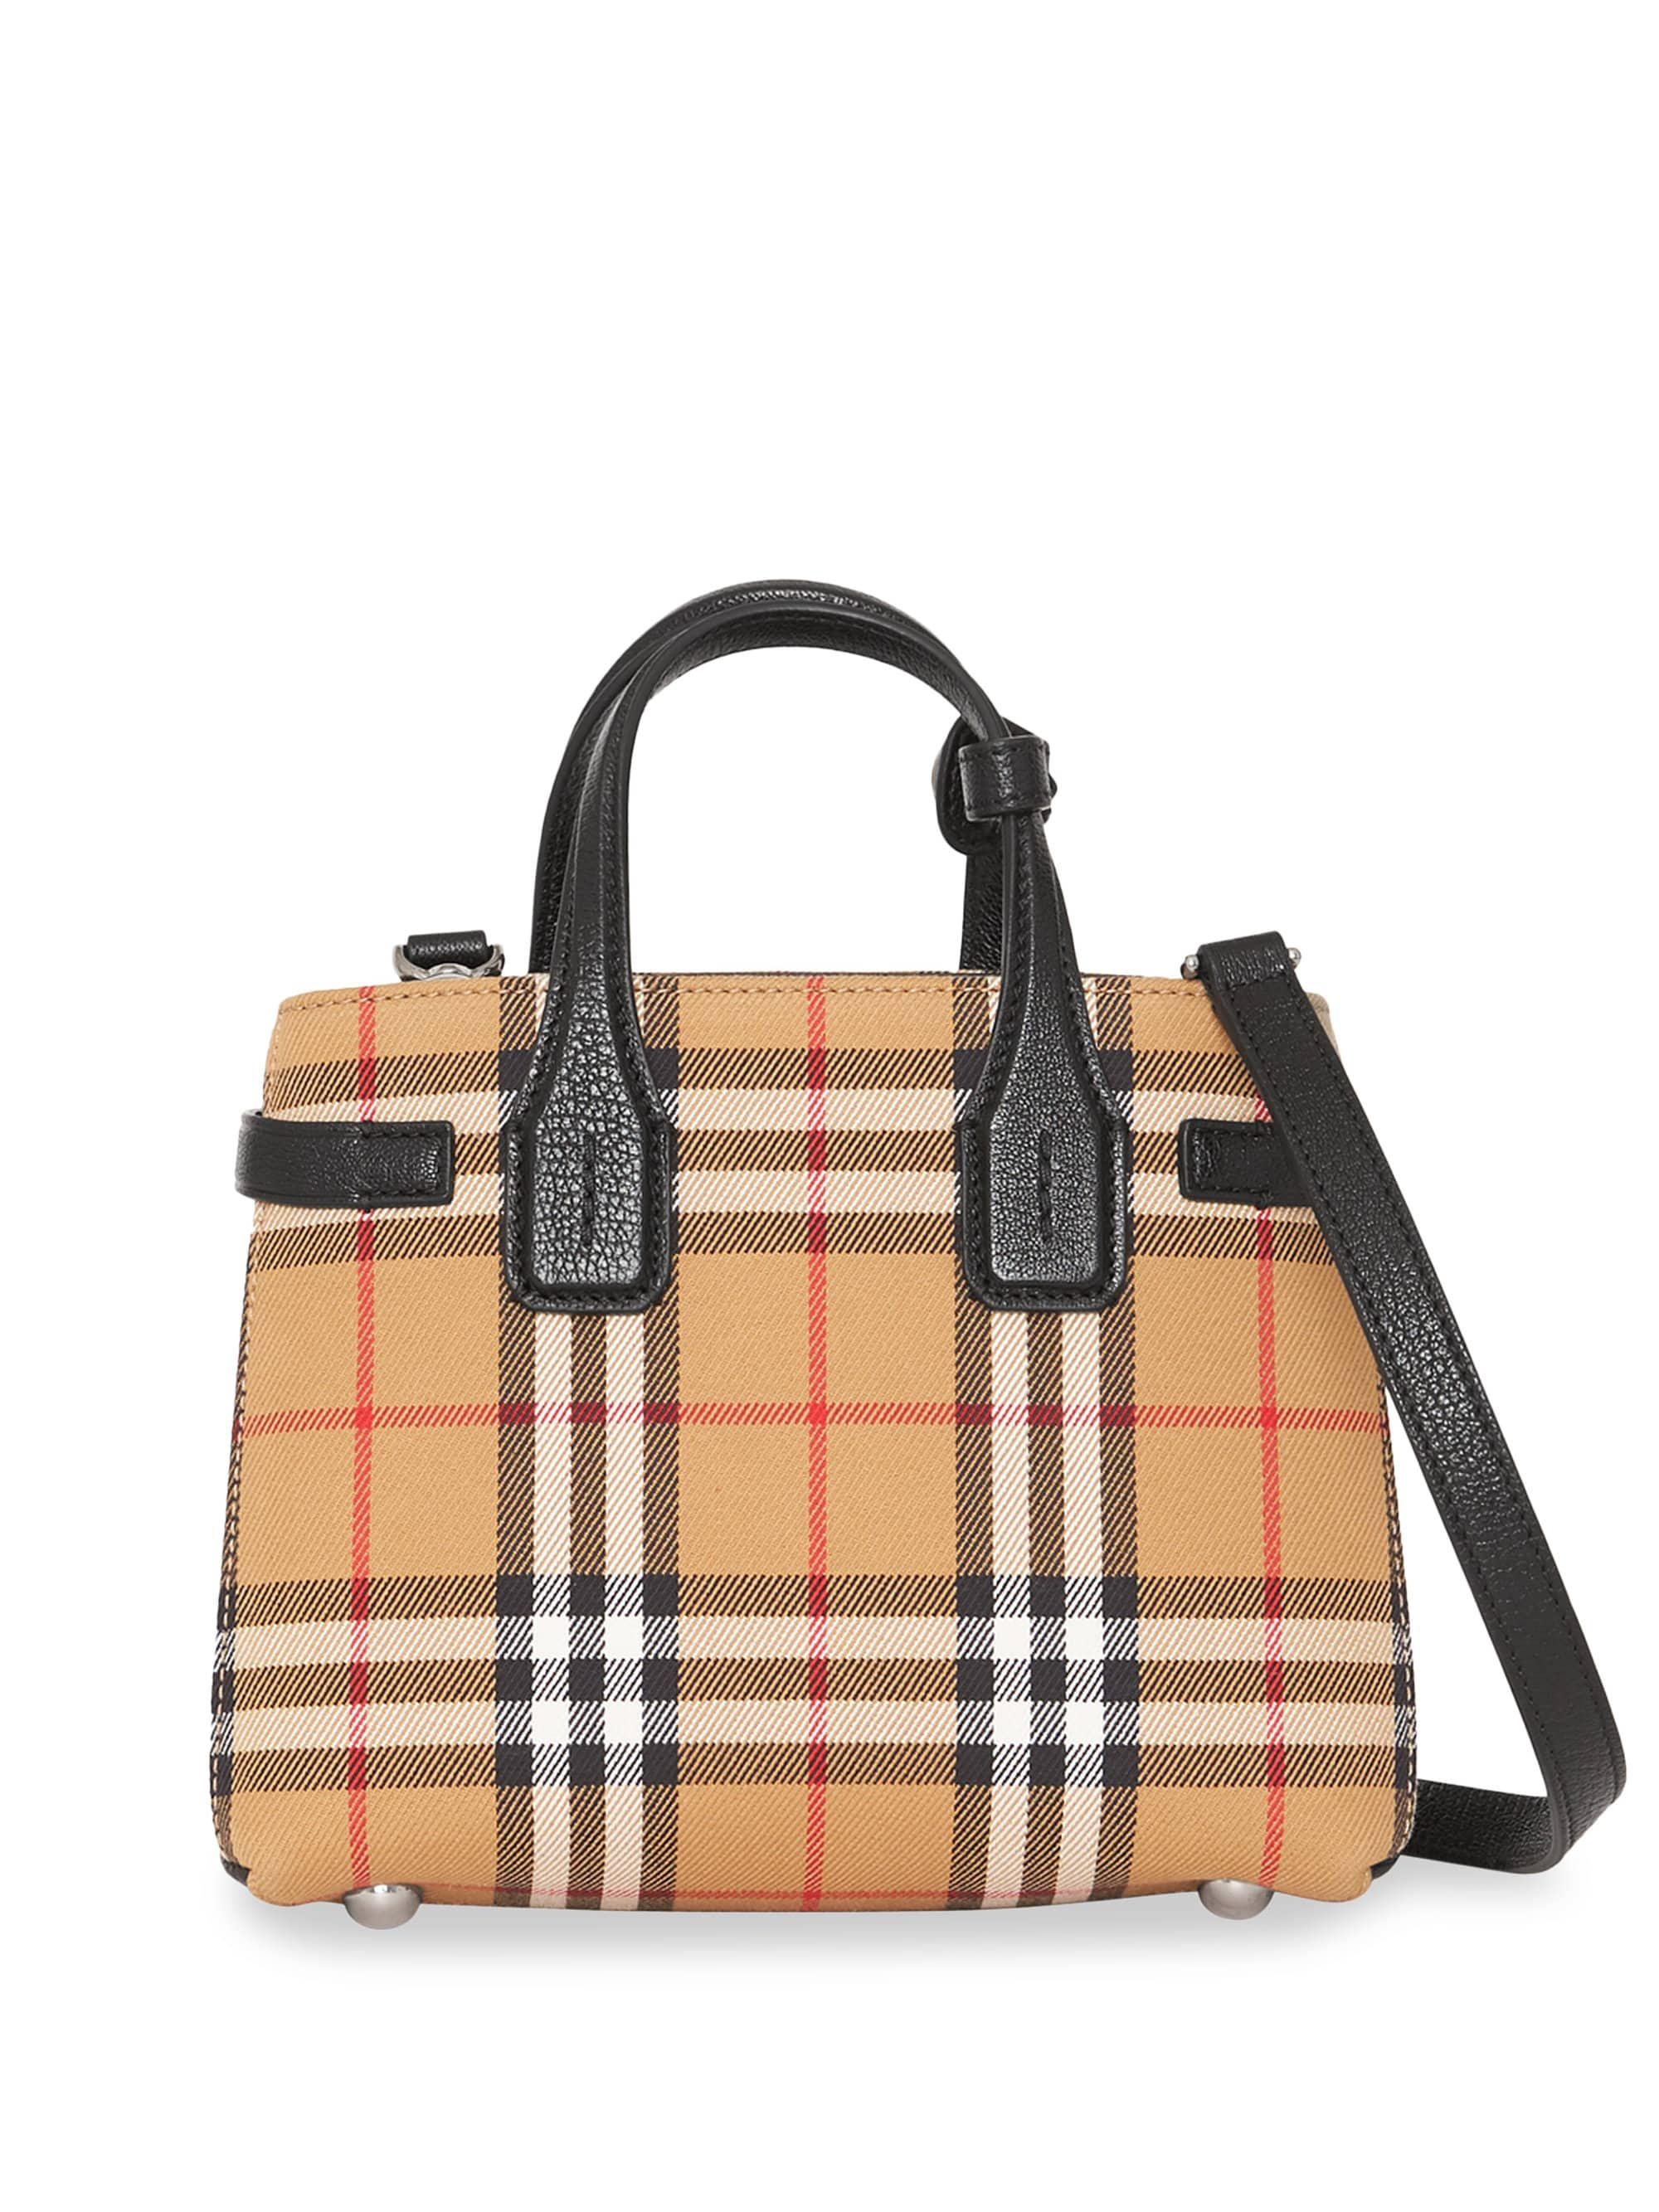 Burberry Baby Banner Vintage Check Leather Satchel - Lyst 9317f7de3001a